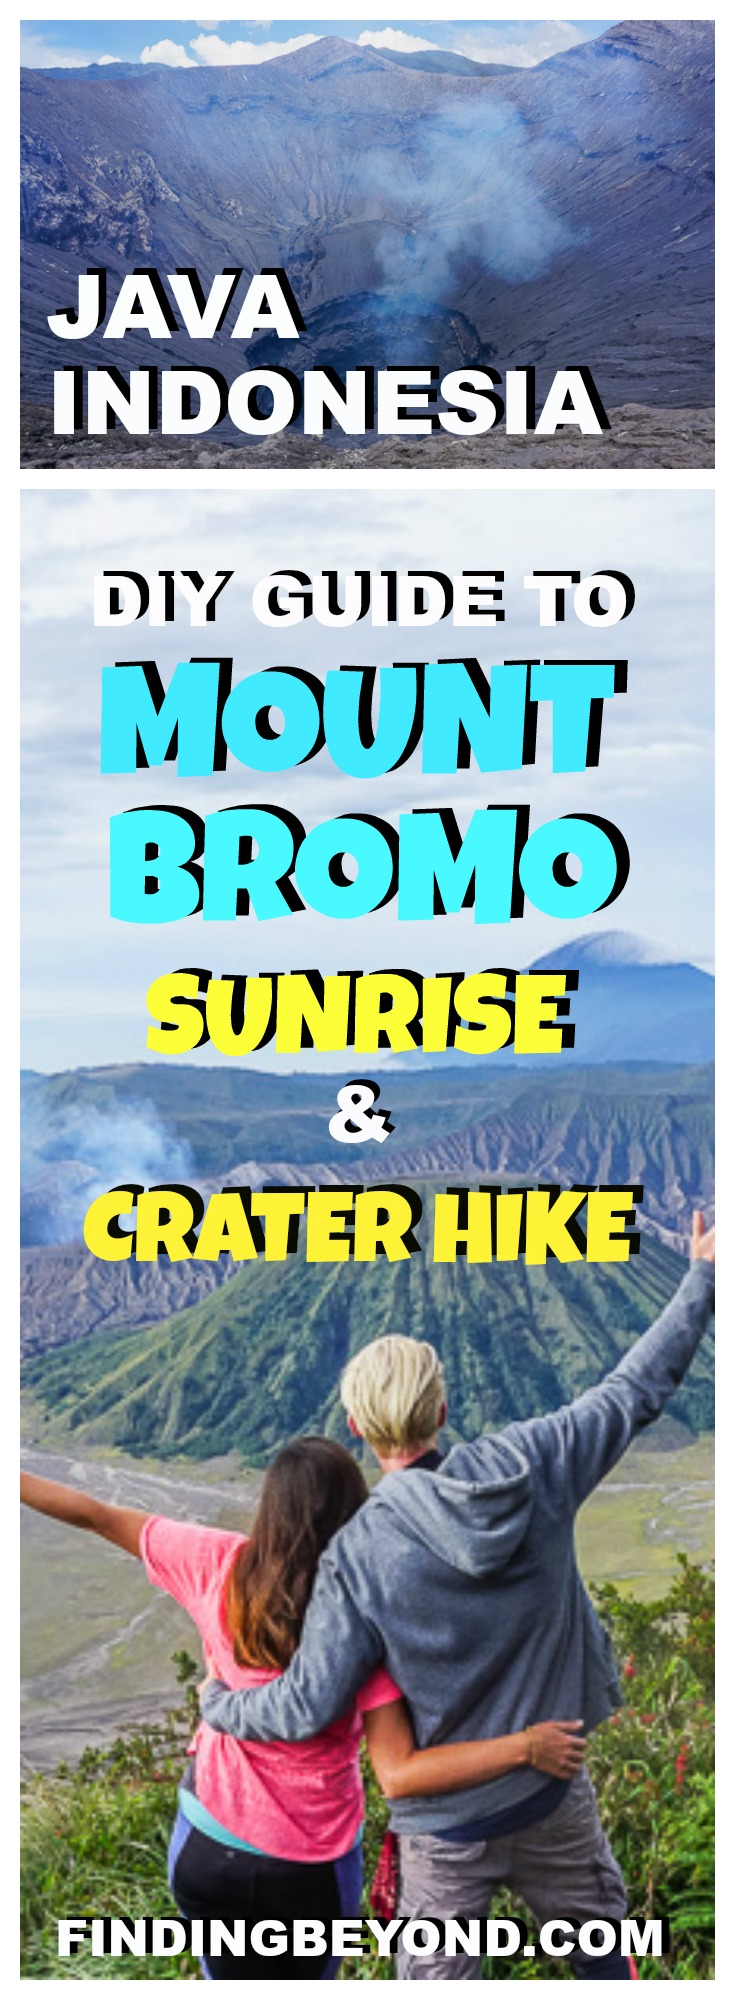 To best enjoy the Mount Bromo sunrise and Mount Bromo hike to Bromo crater, we recommend avoiding a tour and doing it yourself by following this guide.